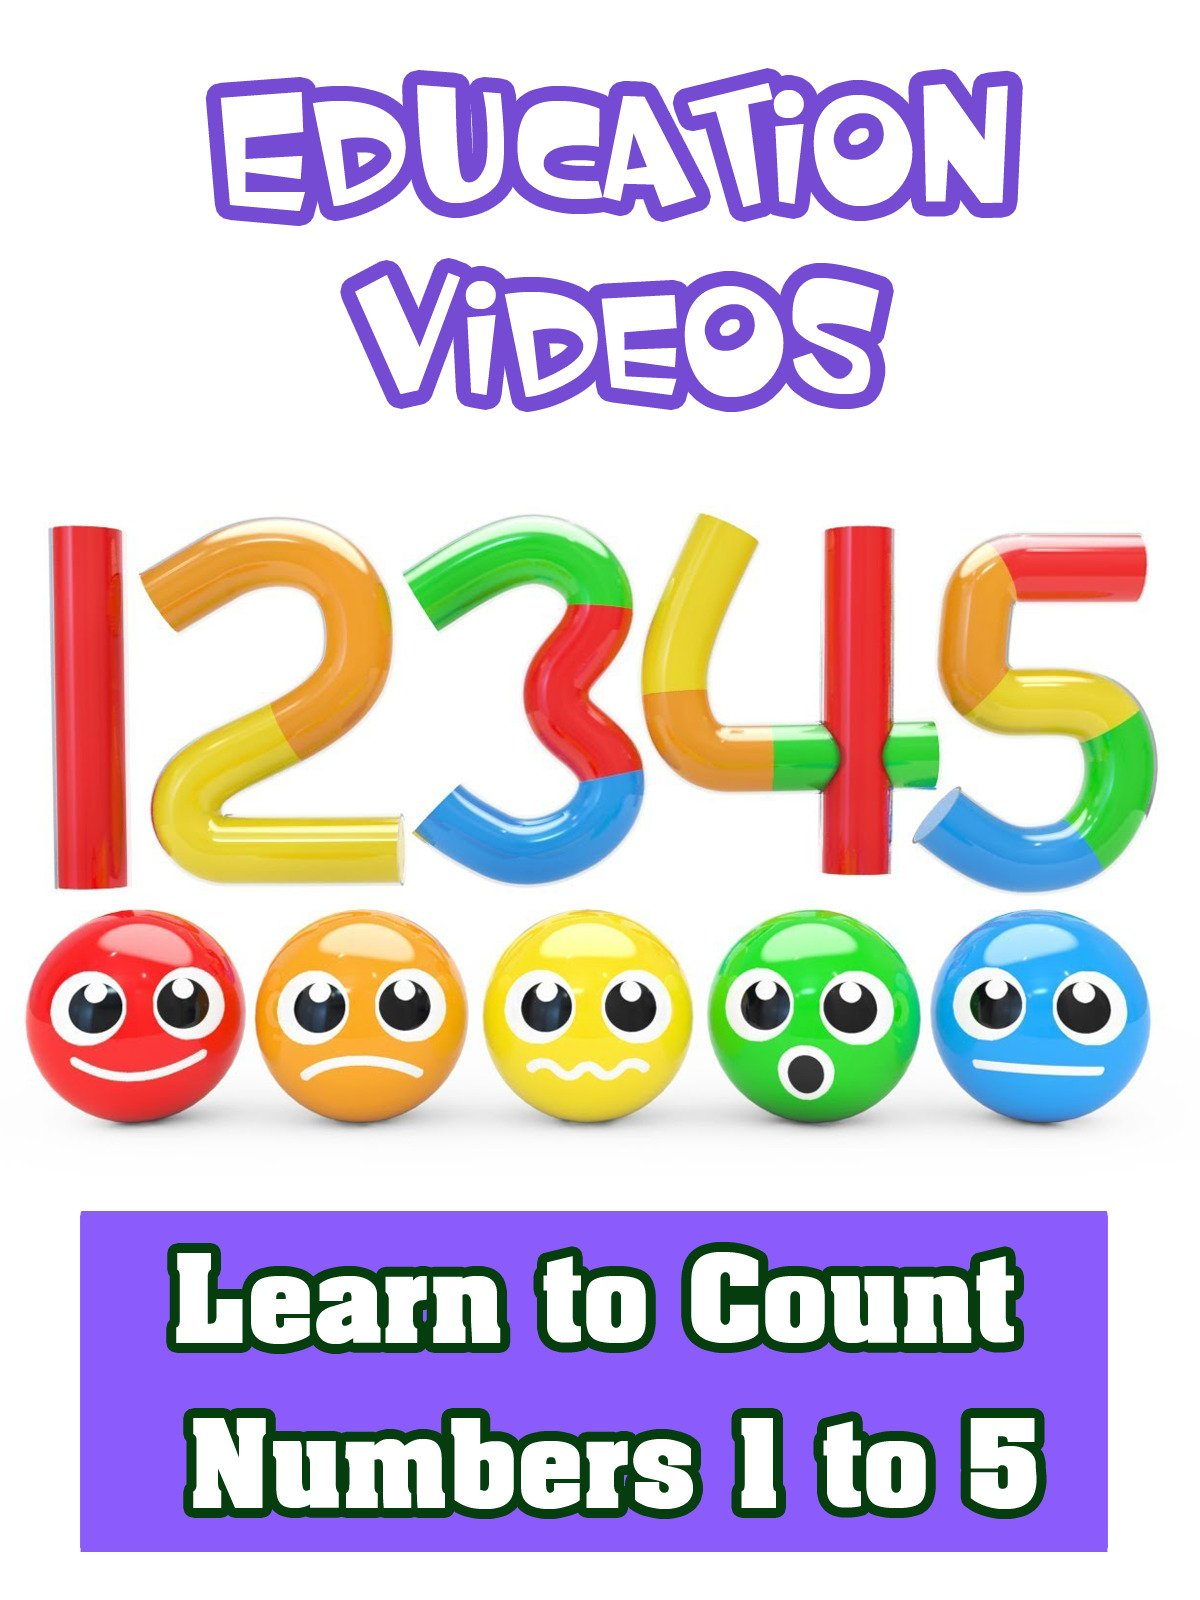 Learn to Count Numbers 1 to 5